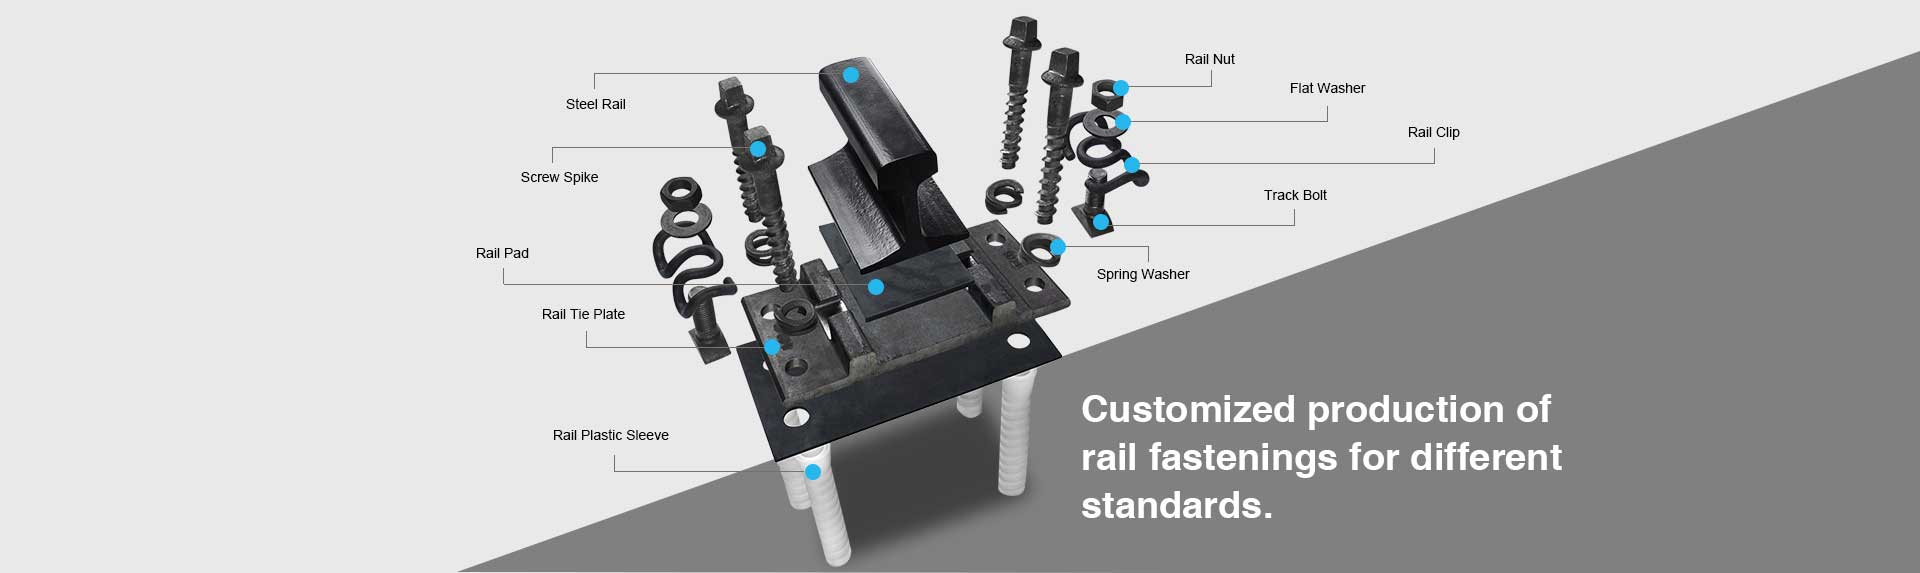 customized production of rail fasteners for various standards